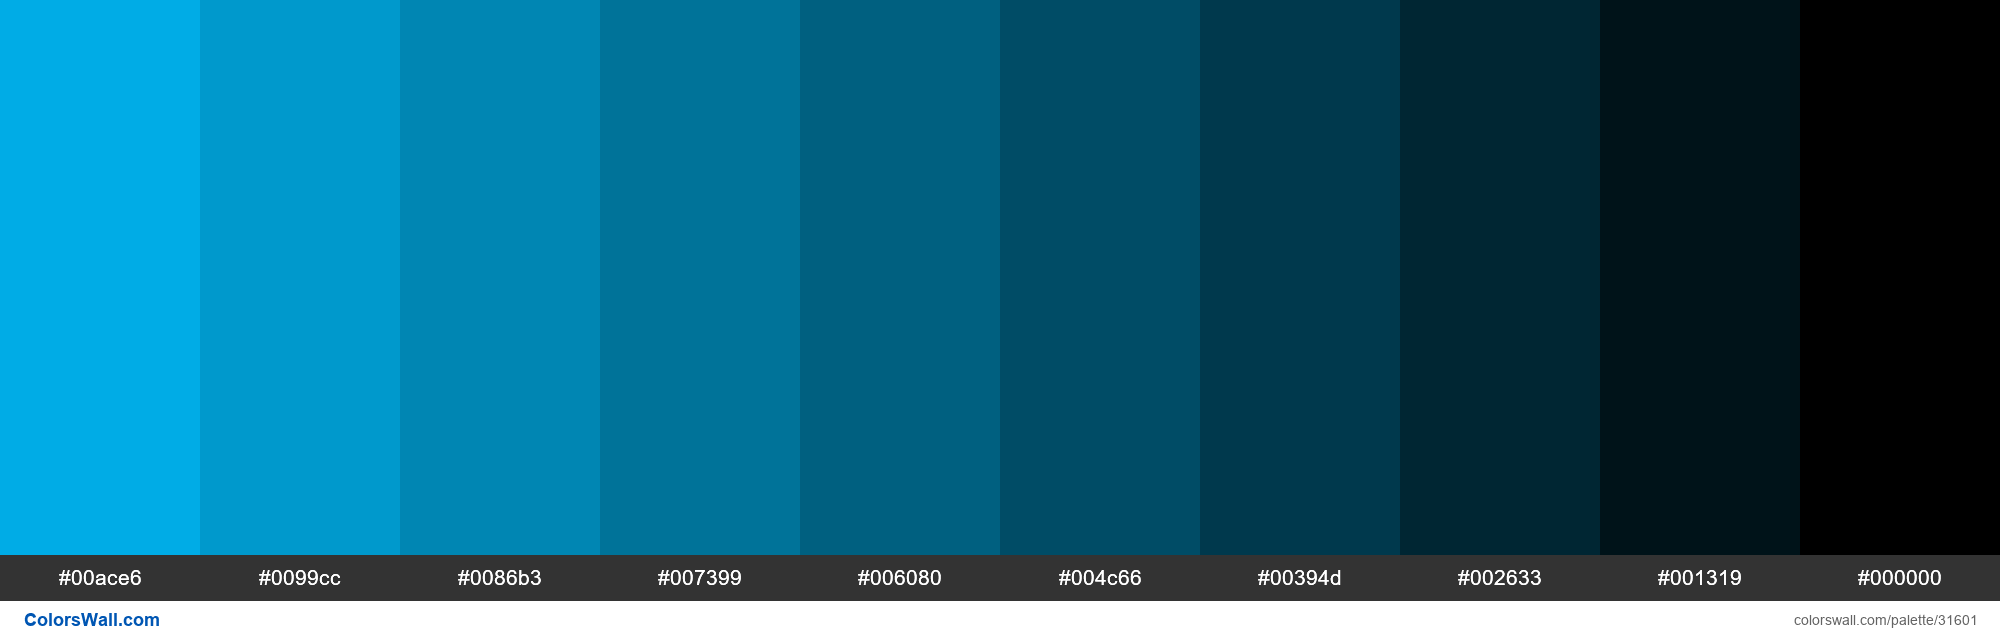 Shades X11 Color Deep Sky Blue 00bfff Hex In 2020 Hex Colors